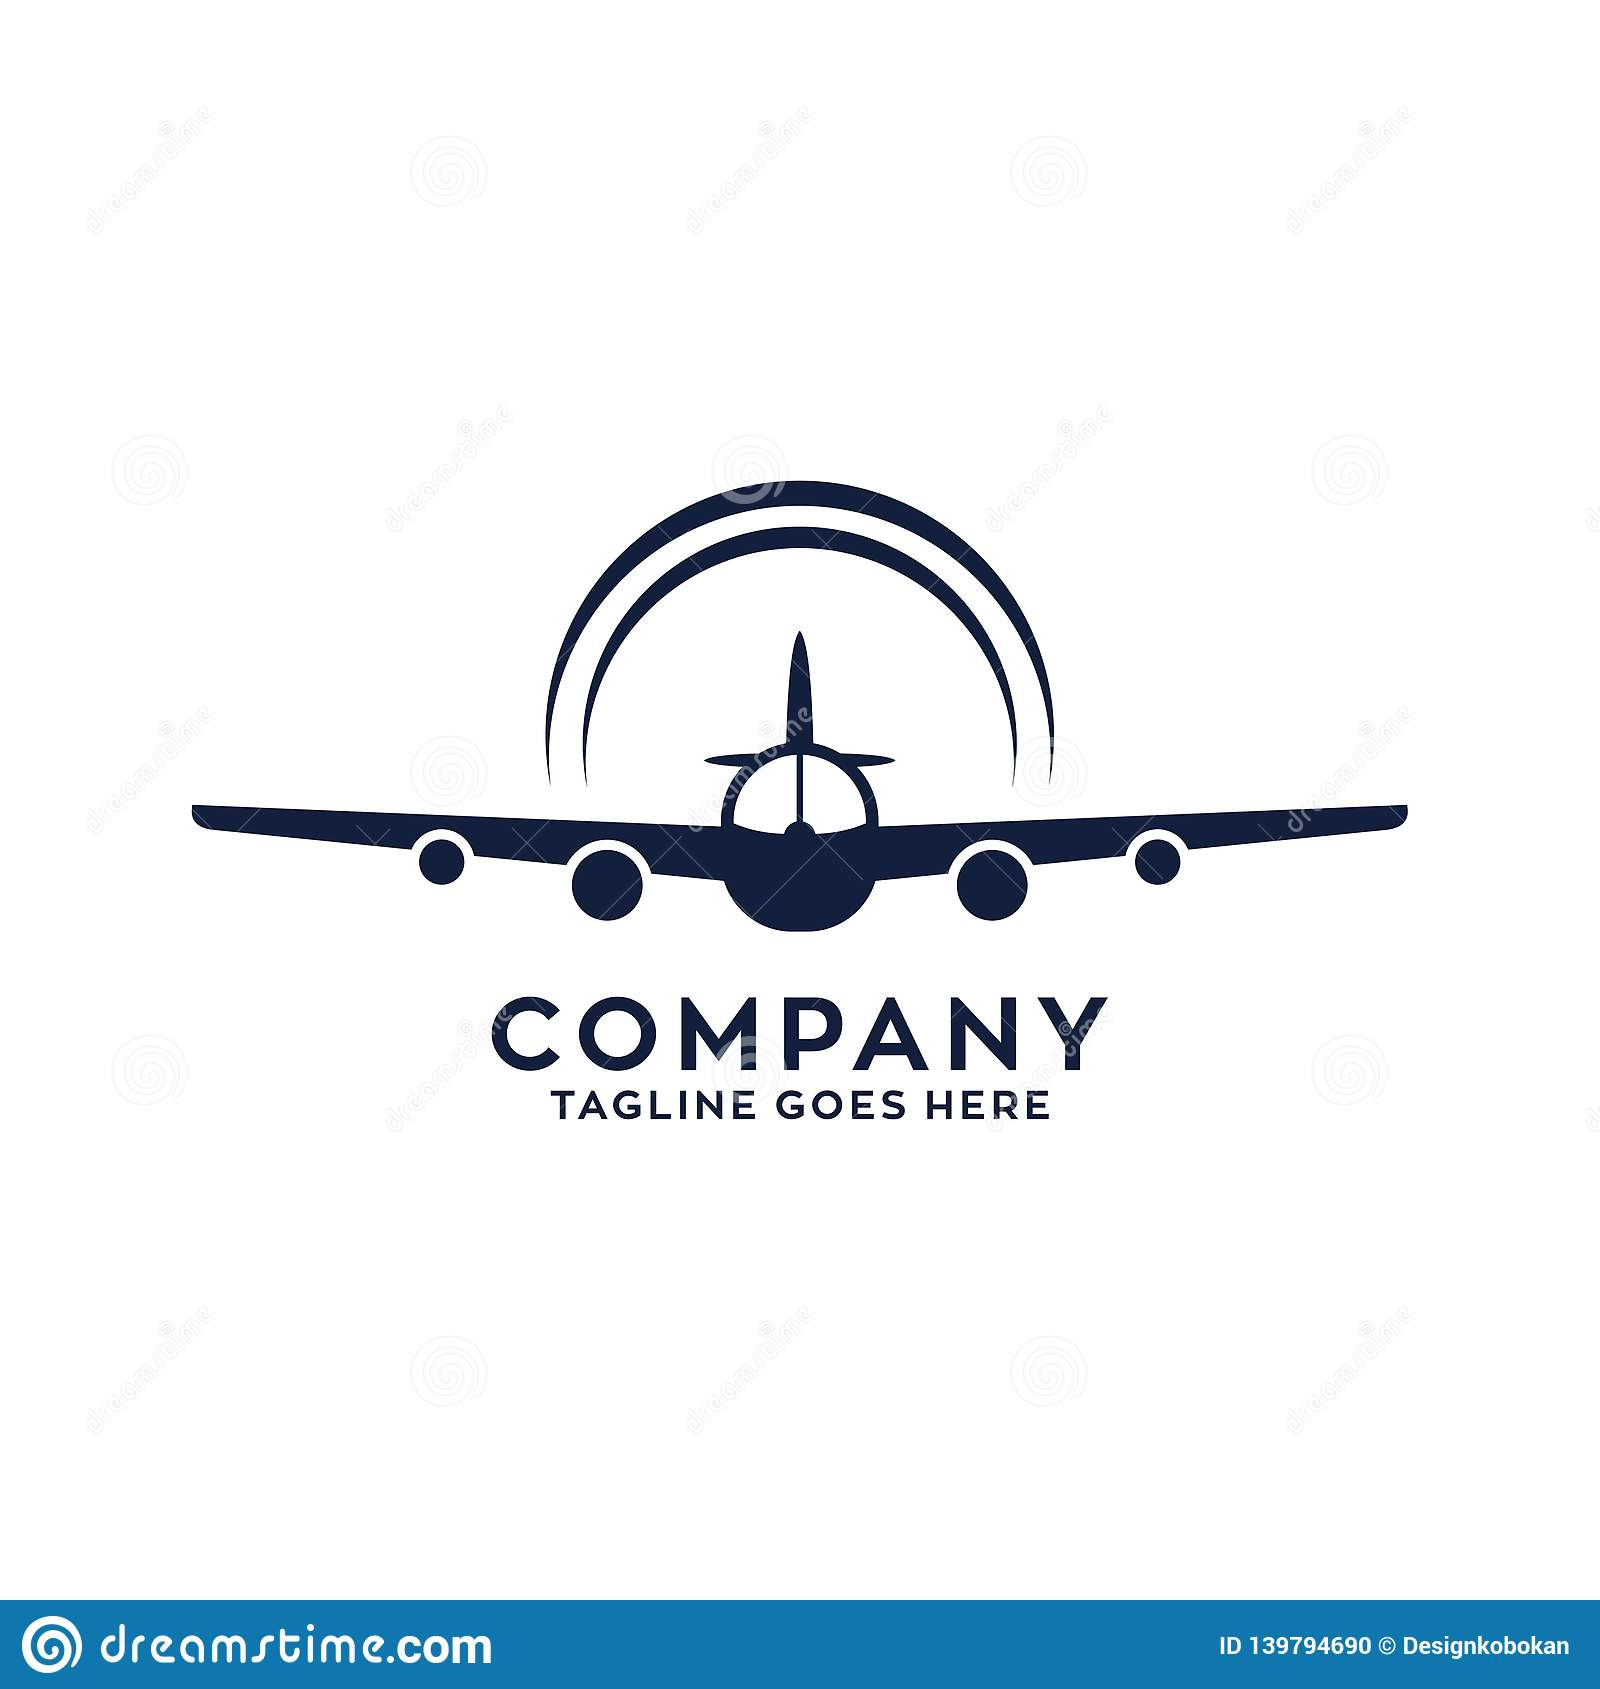 Airplane Or Trainer Plane Logo Design Stock Vector Illustration Of Shape Abstract 139794690